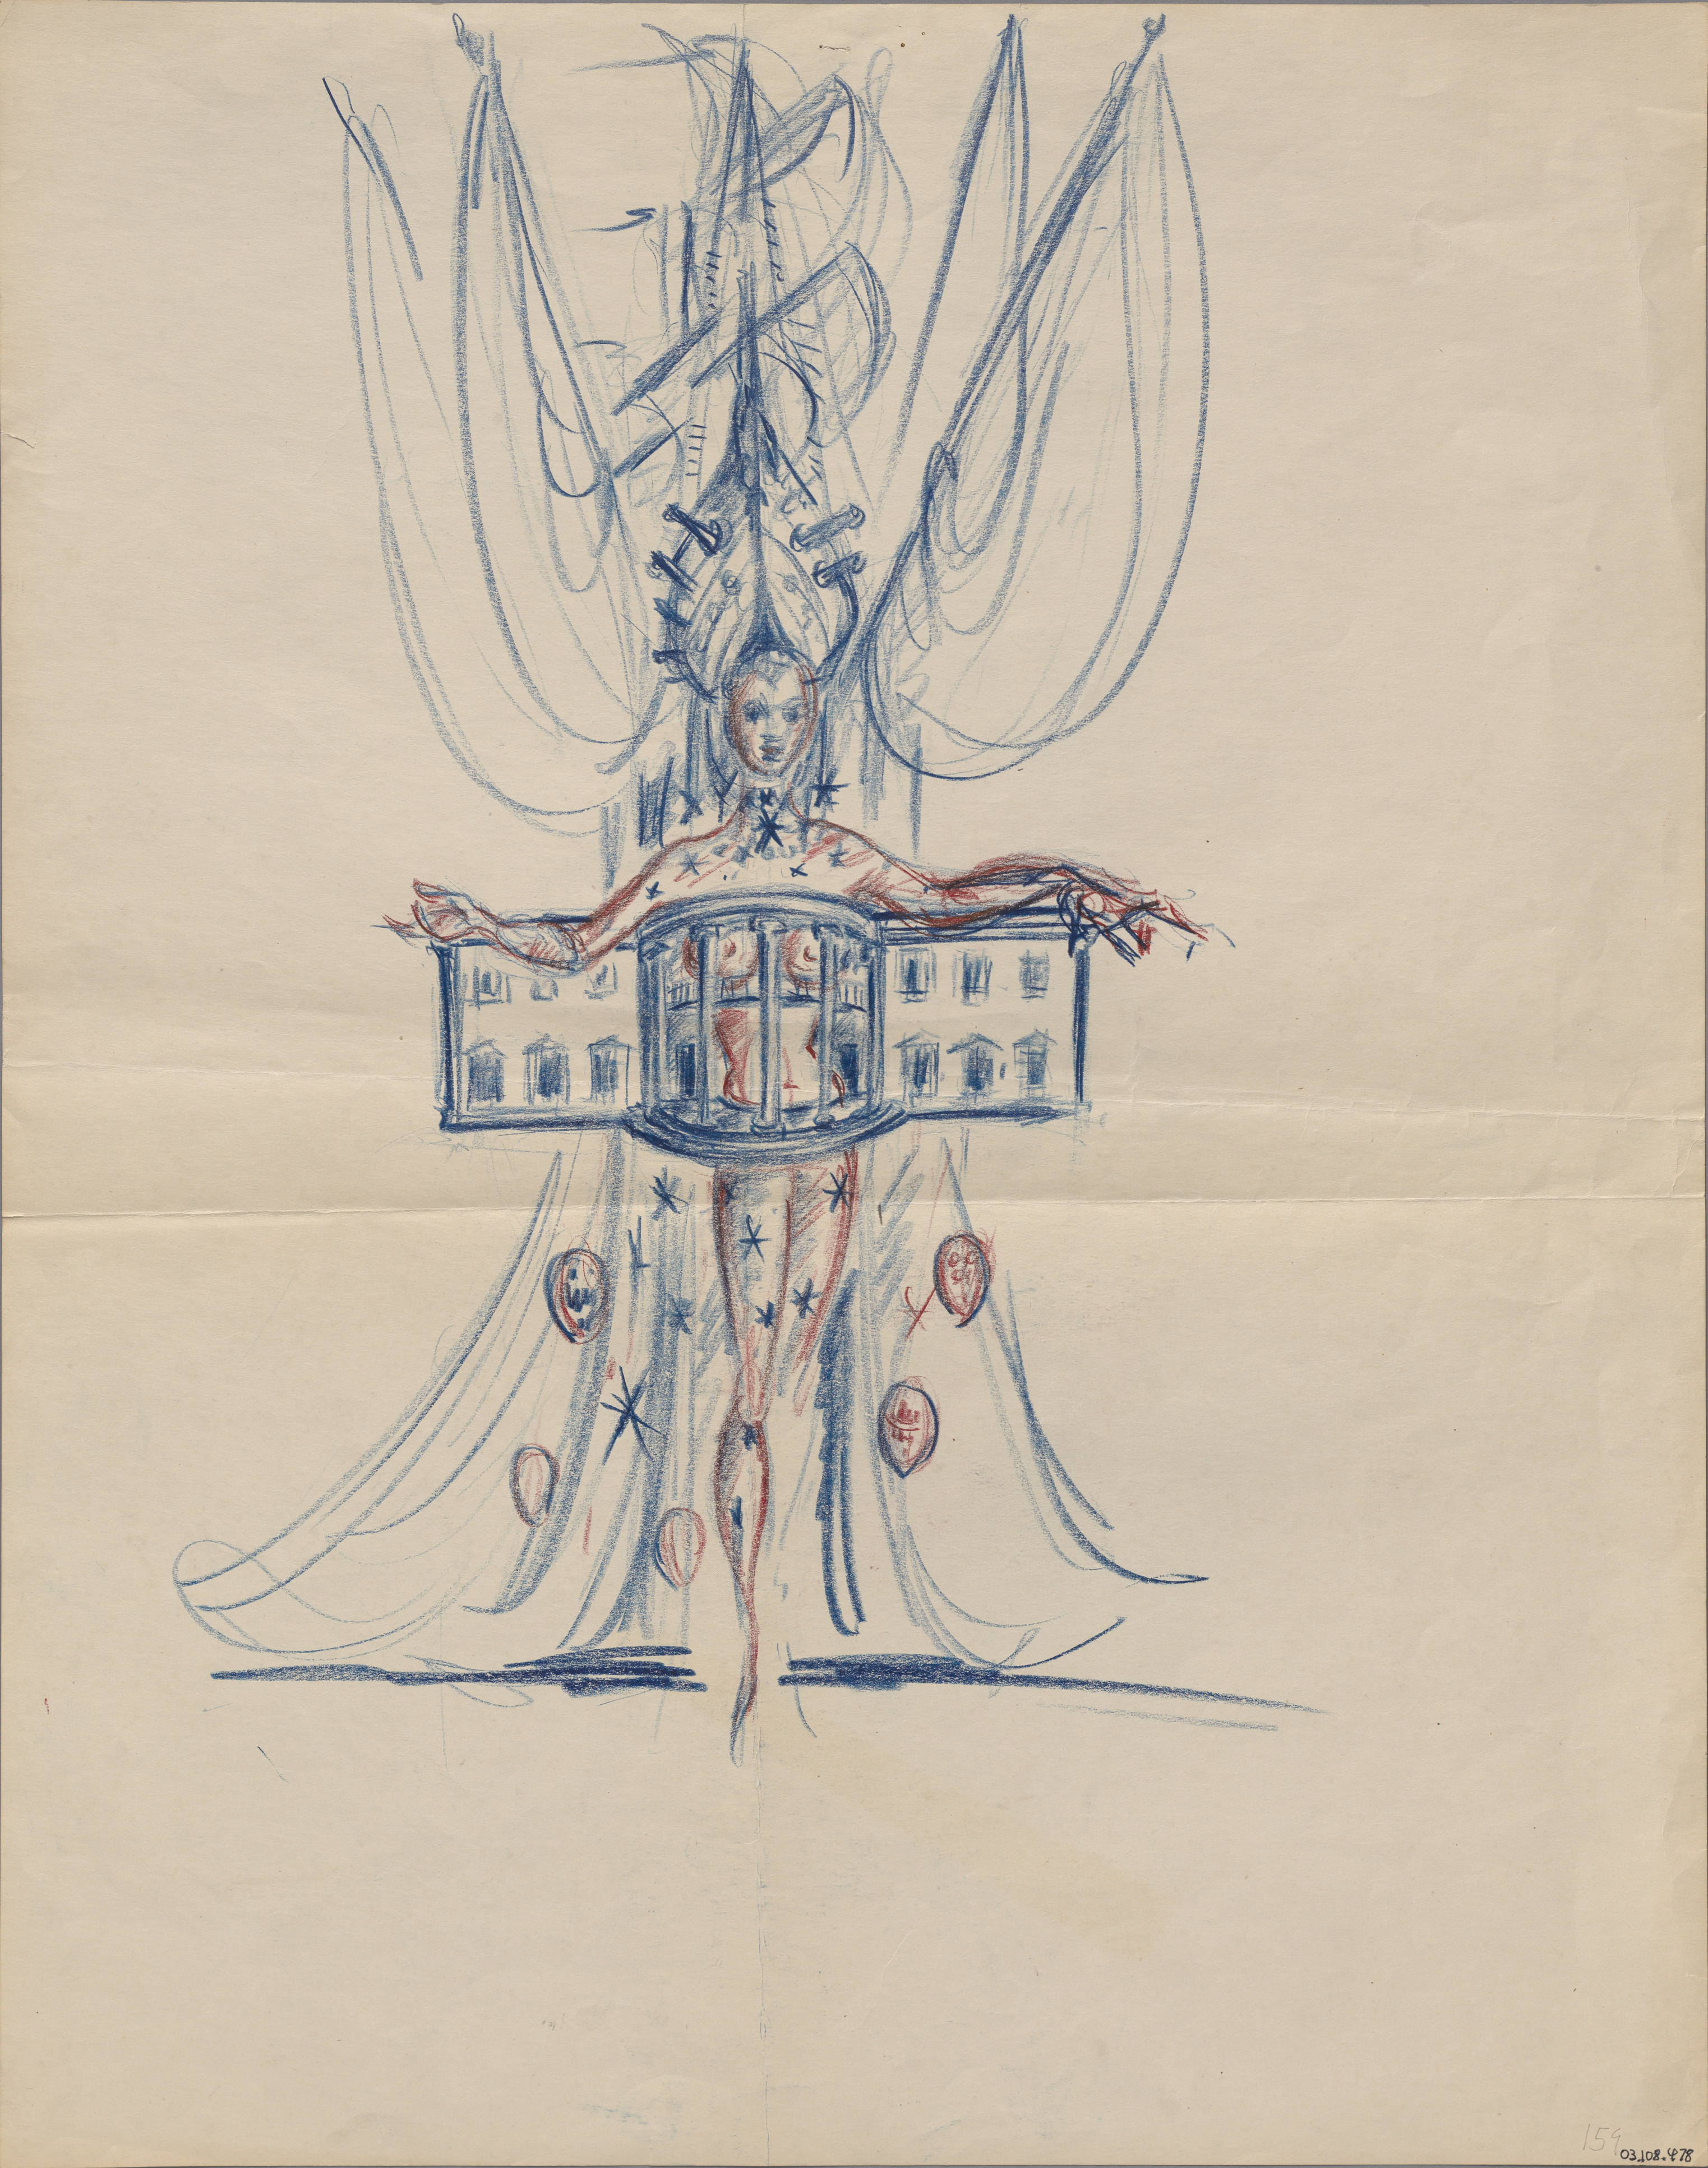 Sketch of a scantily clad woman in White House costume